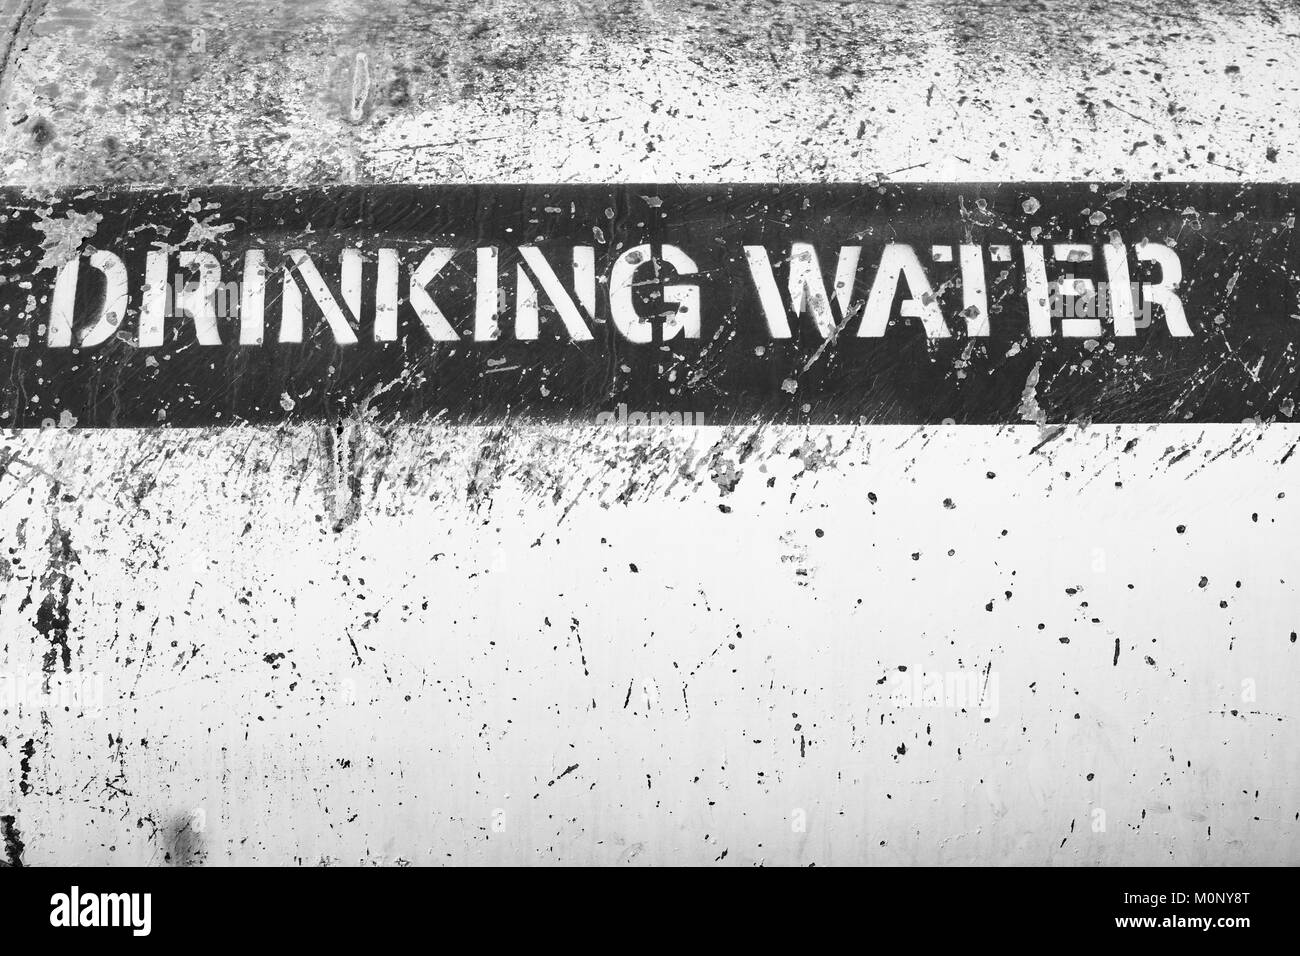 A black and white picture of a label sign saying 'Drinking Water' on the side of a water tanker truck. - Stock Image